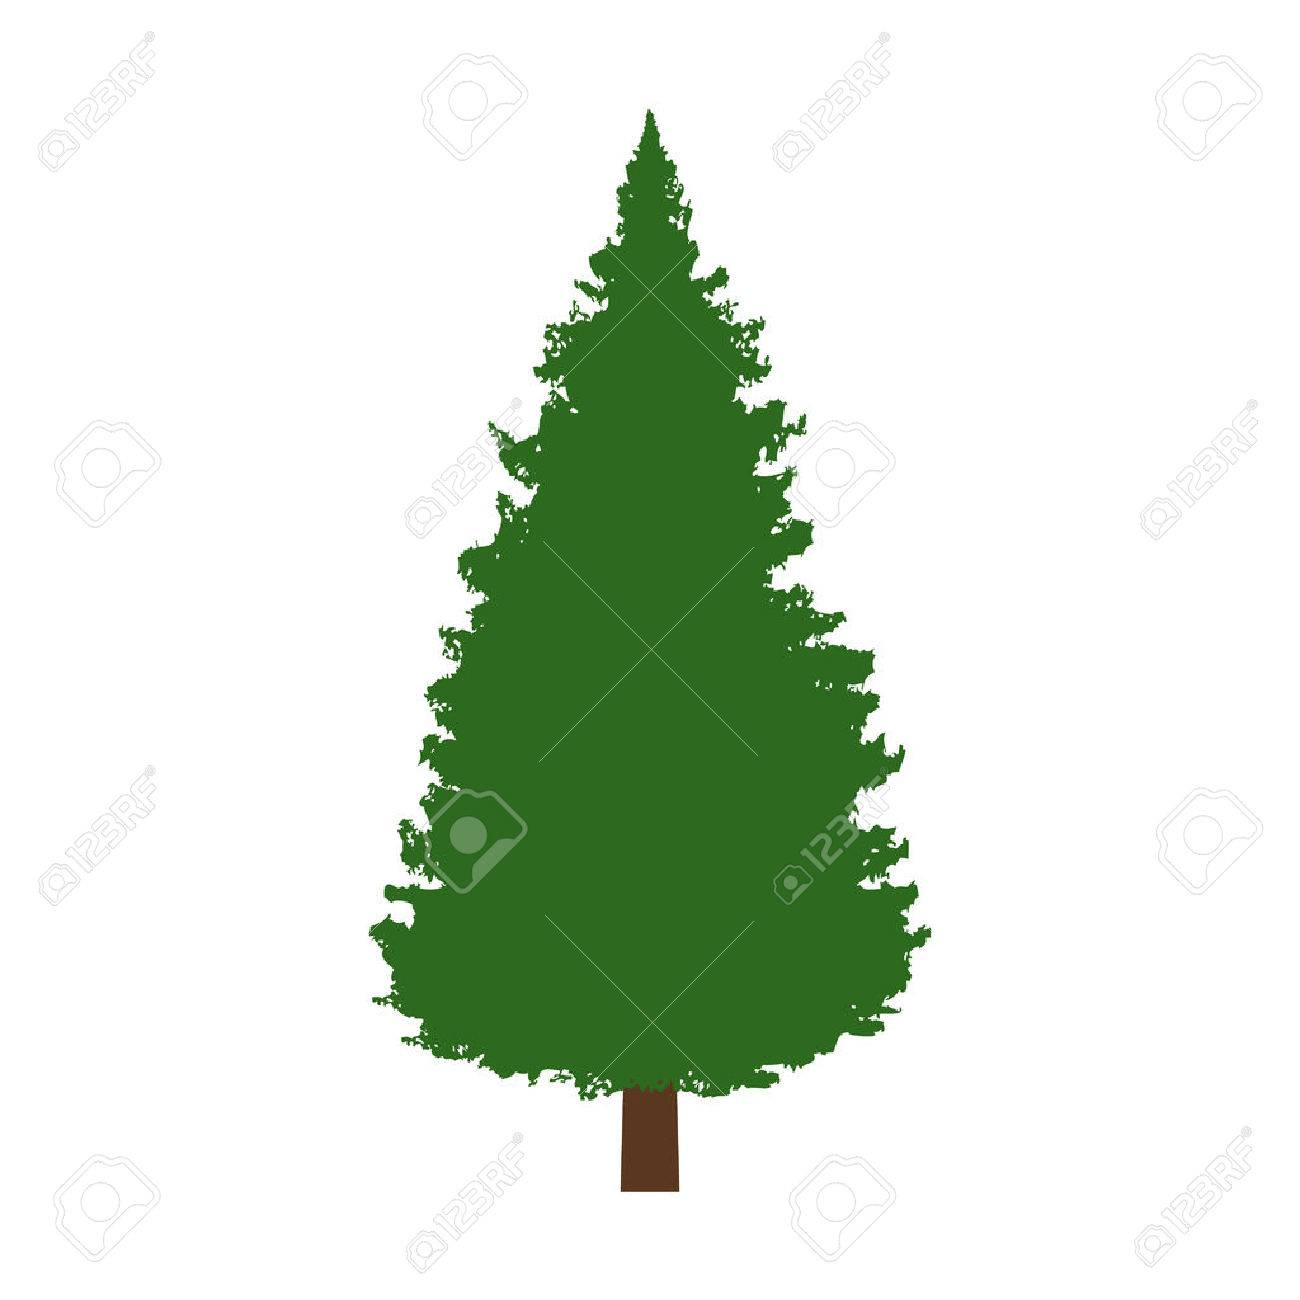 Evergreen conifer / pine tree flat color icon for apps and websites - 55005229